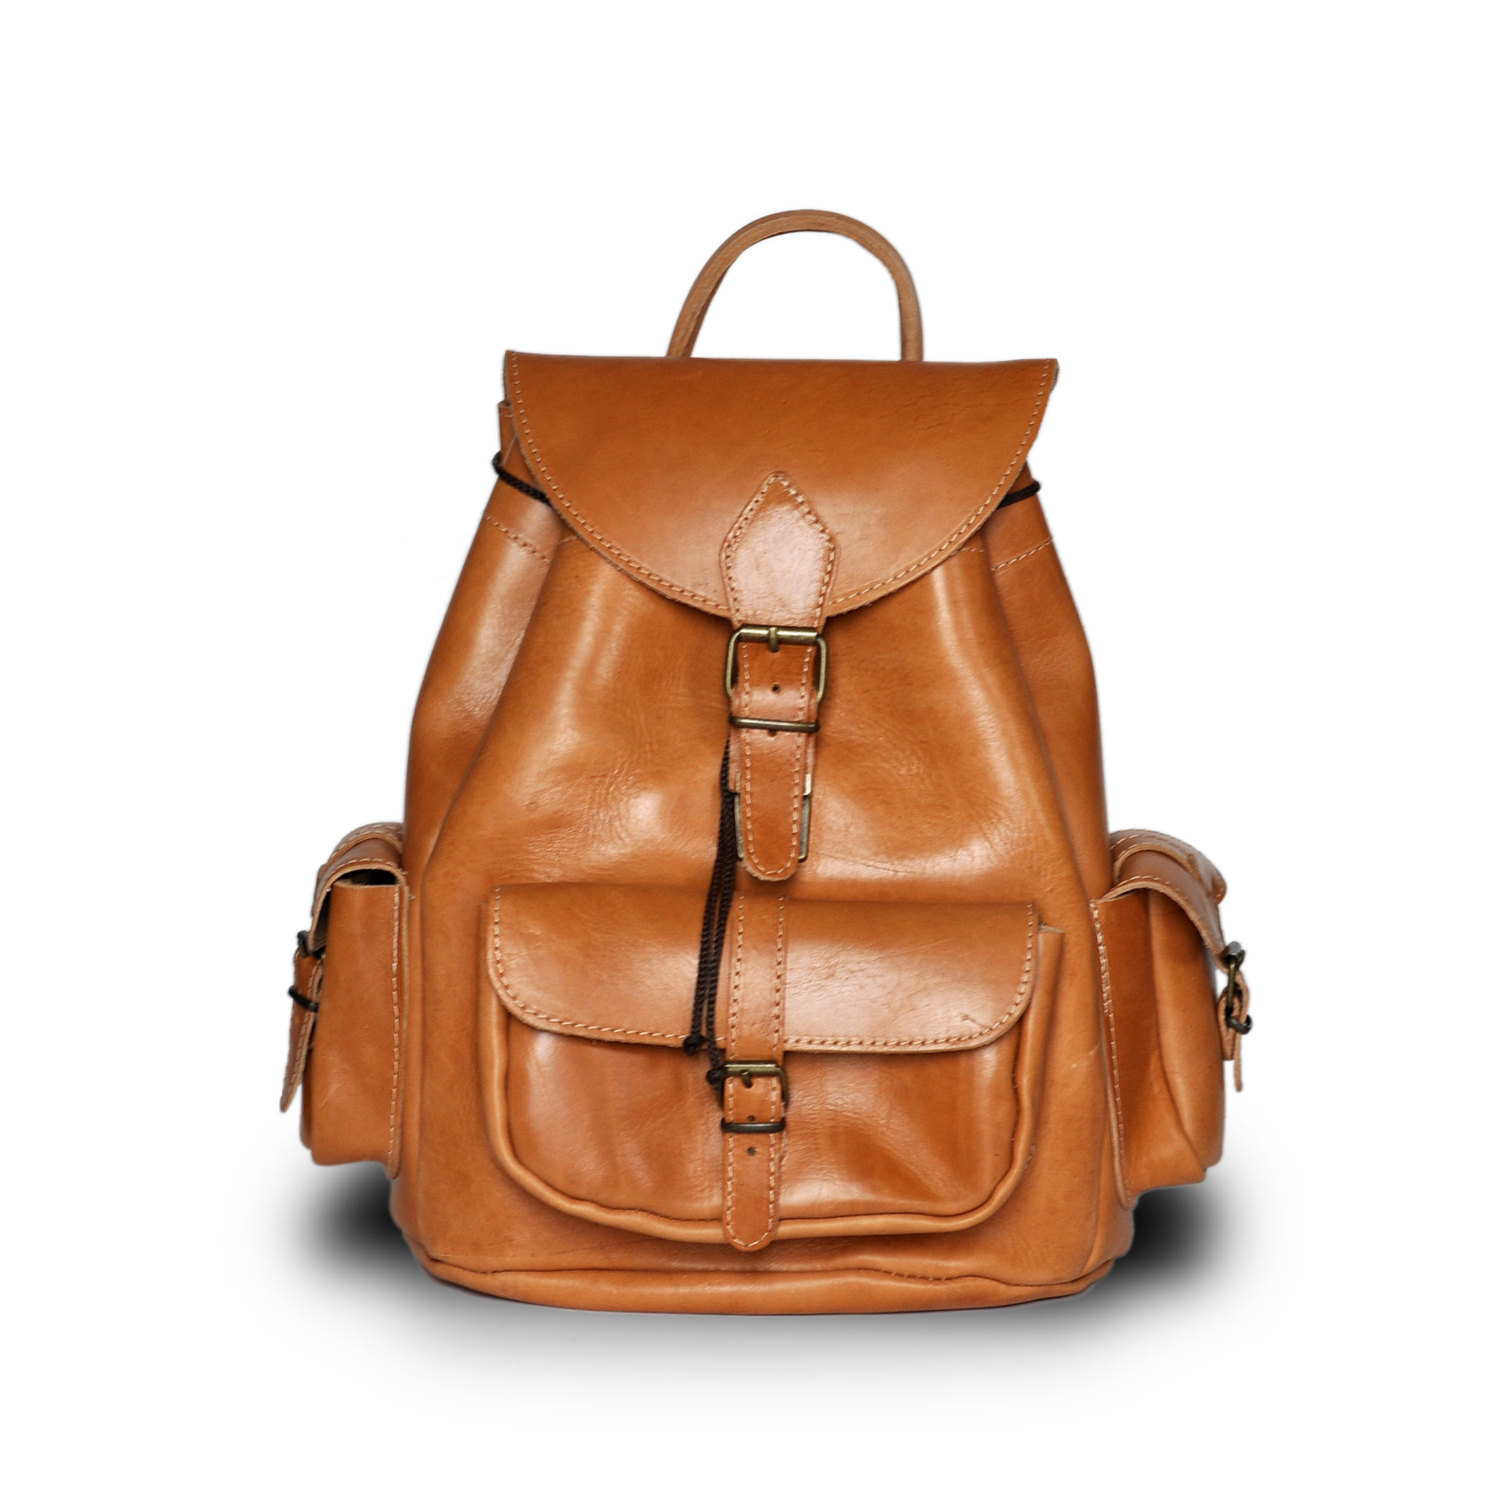 Leather Backpacks Women bHMwkfnU